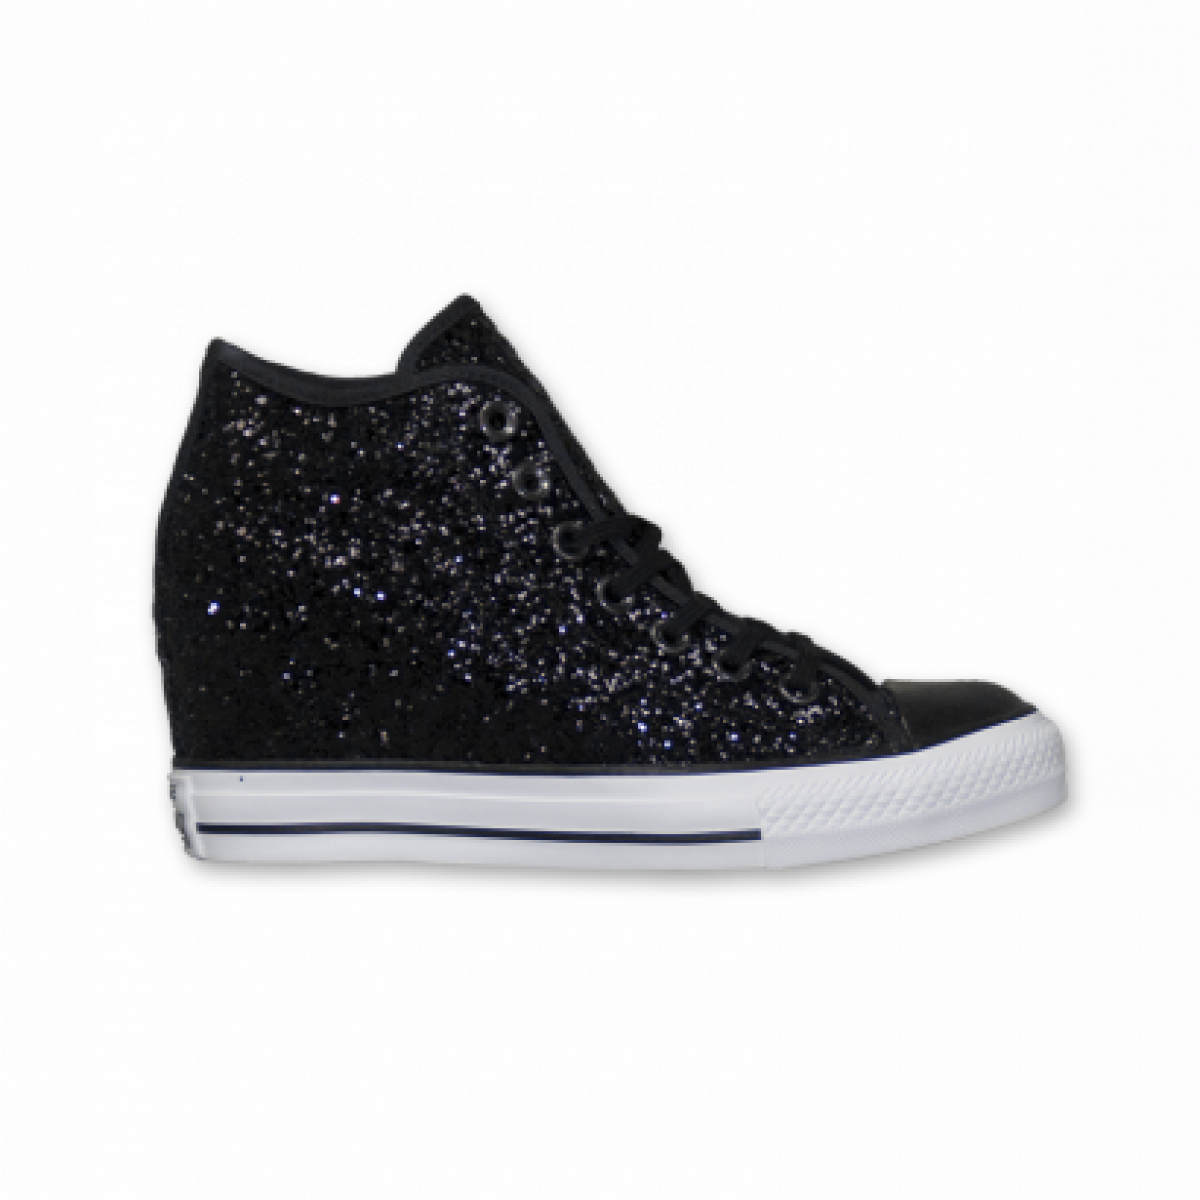 converse all star donna tacco interno